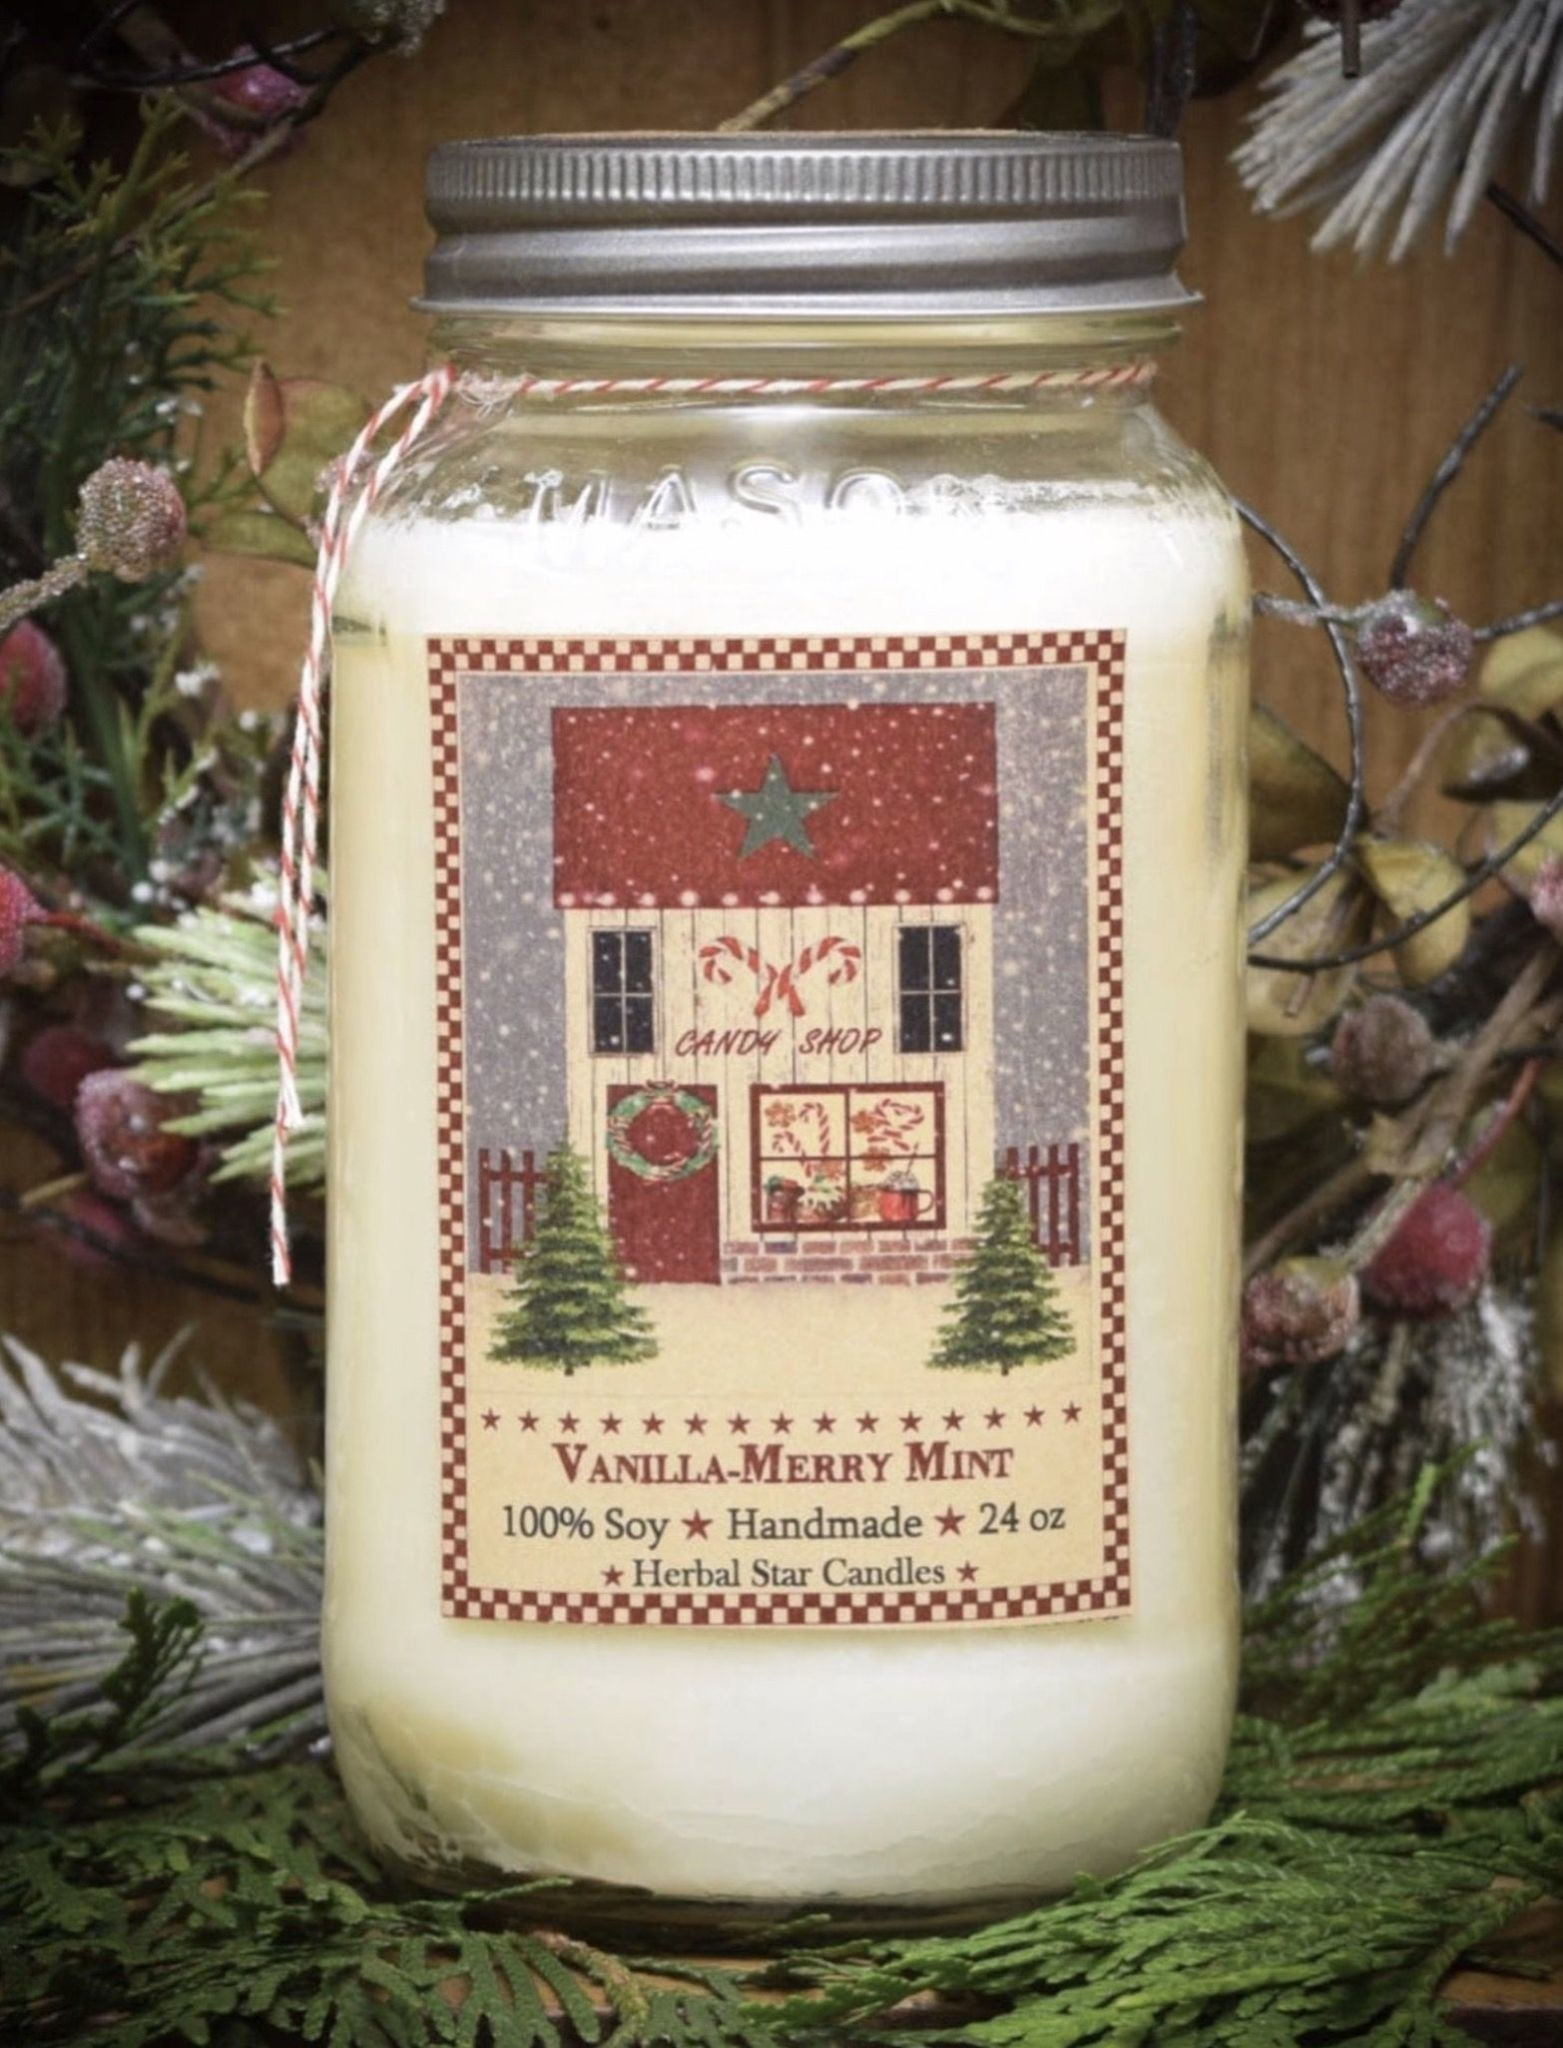 Herbal Star Candles Vanilla-Merry Mint Soy Jar Candle 24oz